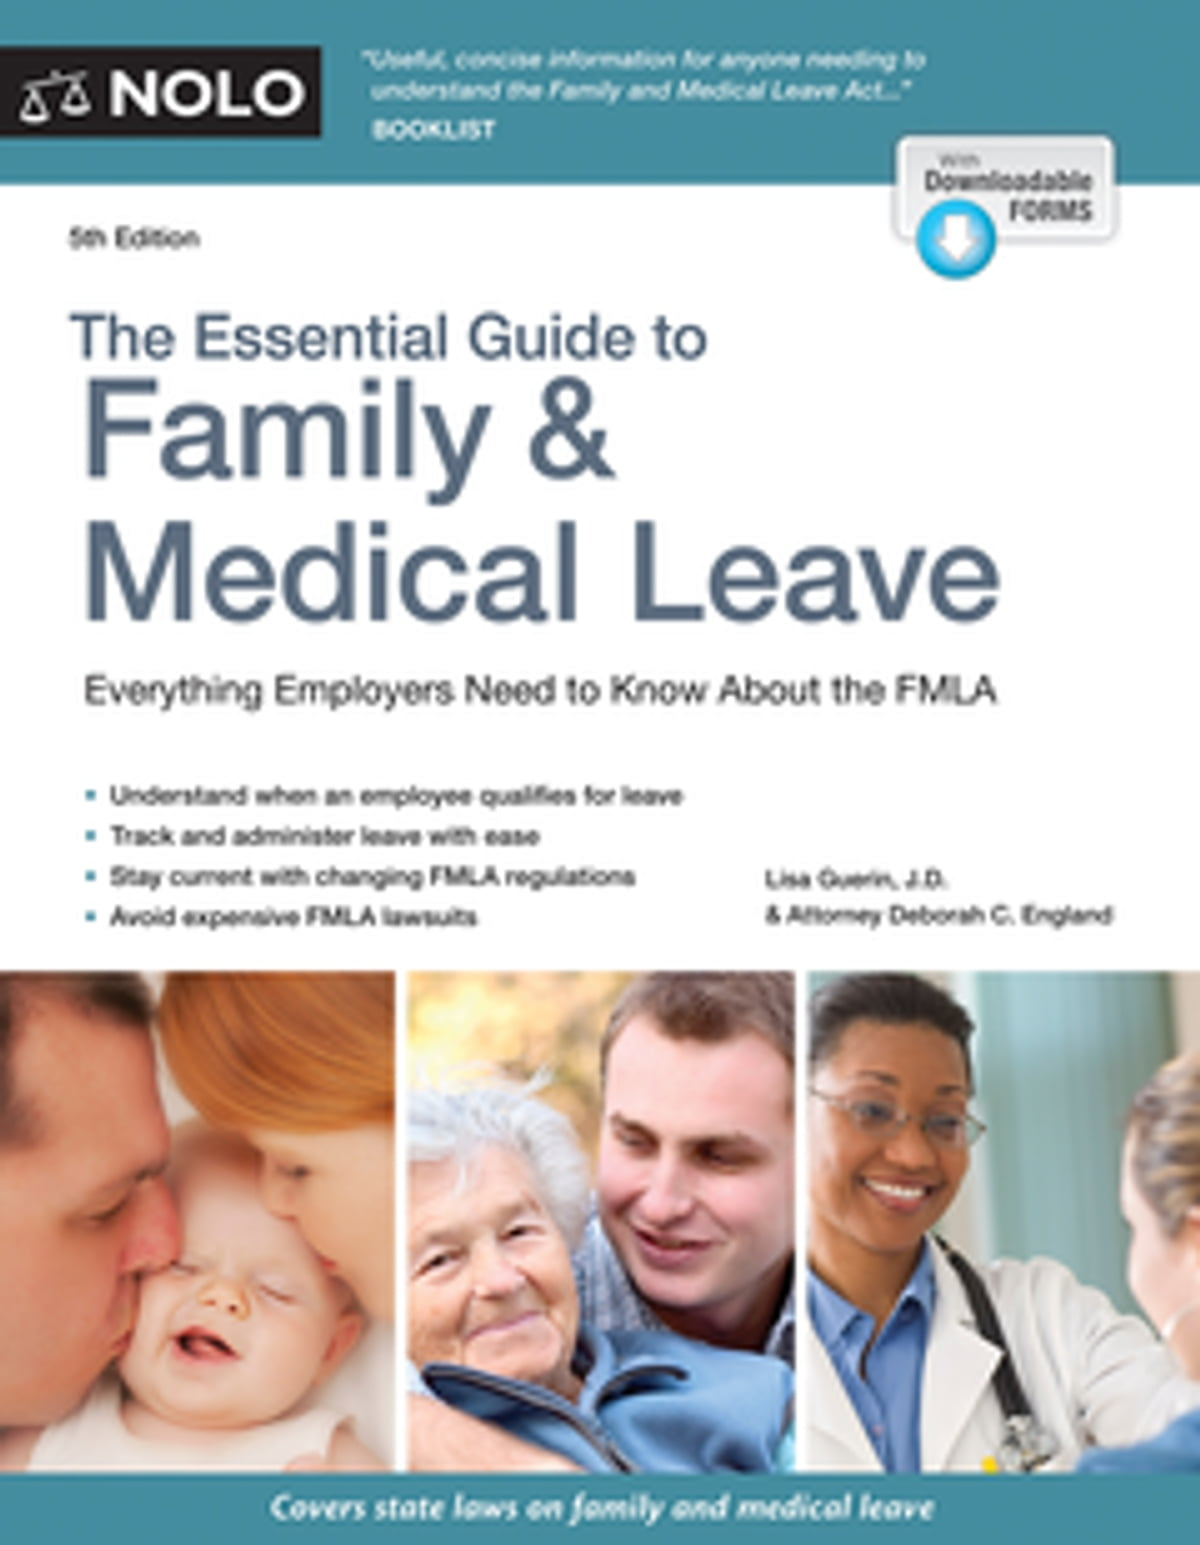 Essential Guide to Family & Medical Leave, The eBook by Lisa Guerin, J.D. -  9781413325300 | Rakuten Kobo